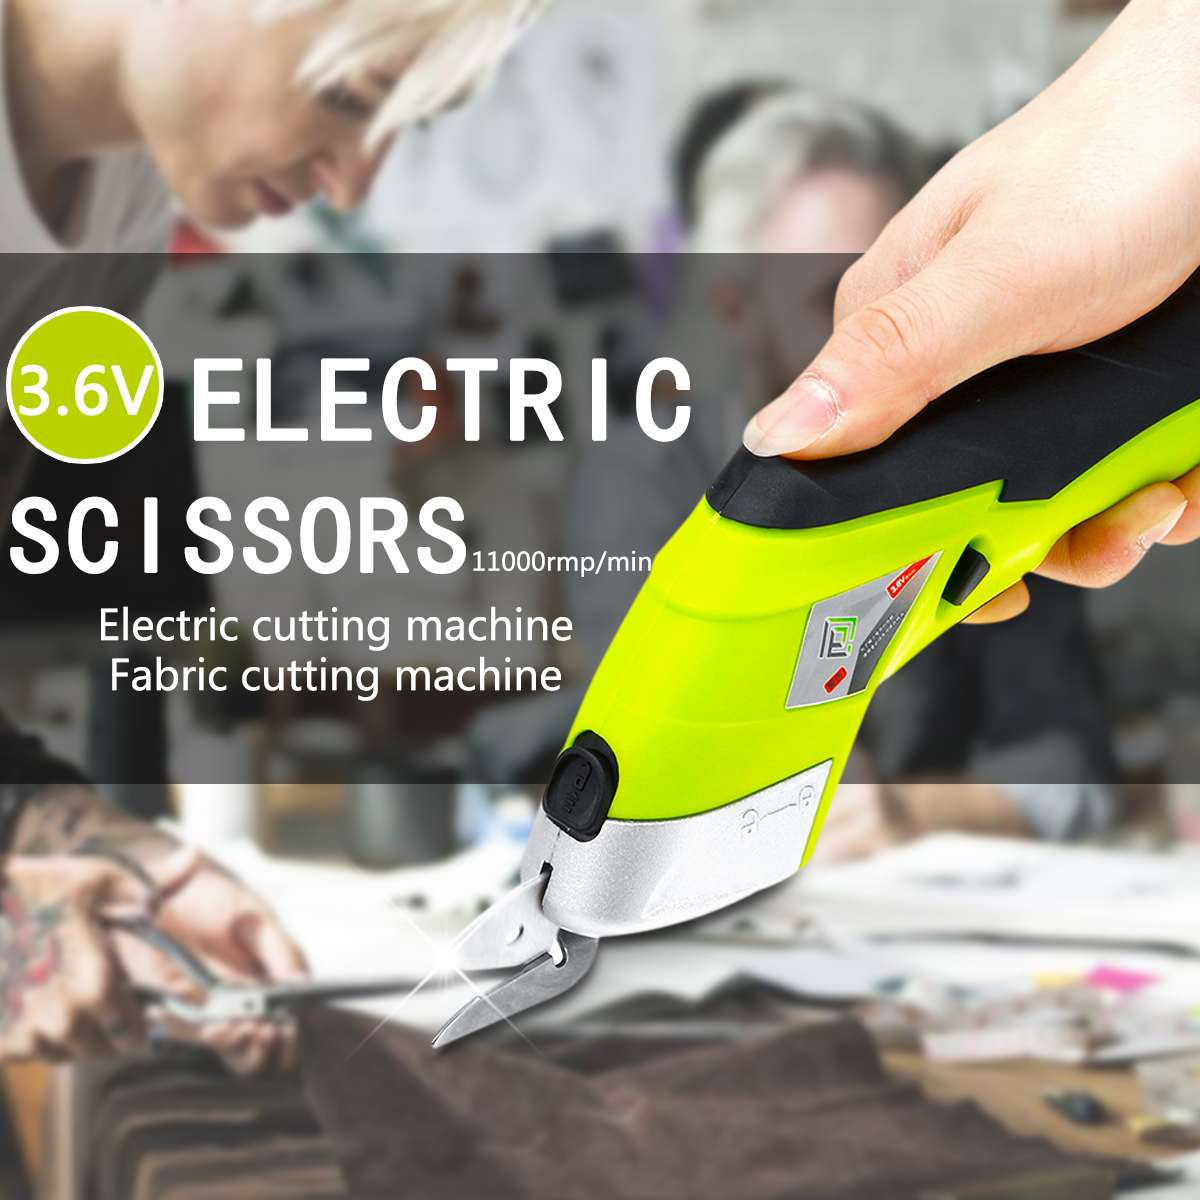 DOERSUPP Multipurpose 110V-220V Electric Scissors Cordless Chargeable Fabric Sewing Scissors Handheld Hand Tools ElectricDOERSUPP Multipurpose 110V-220V Electric Scissors Cordless Chargeable Fabric Sewing Scissors Handheld Hand Tools Electric